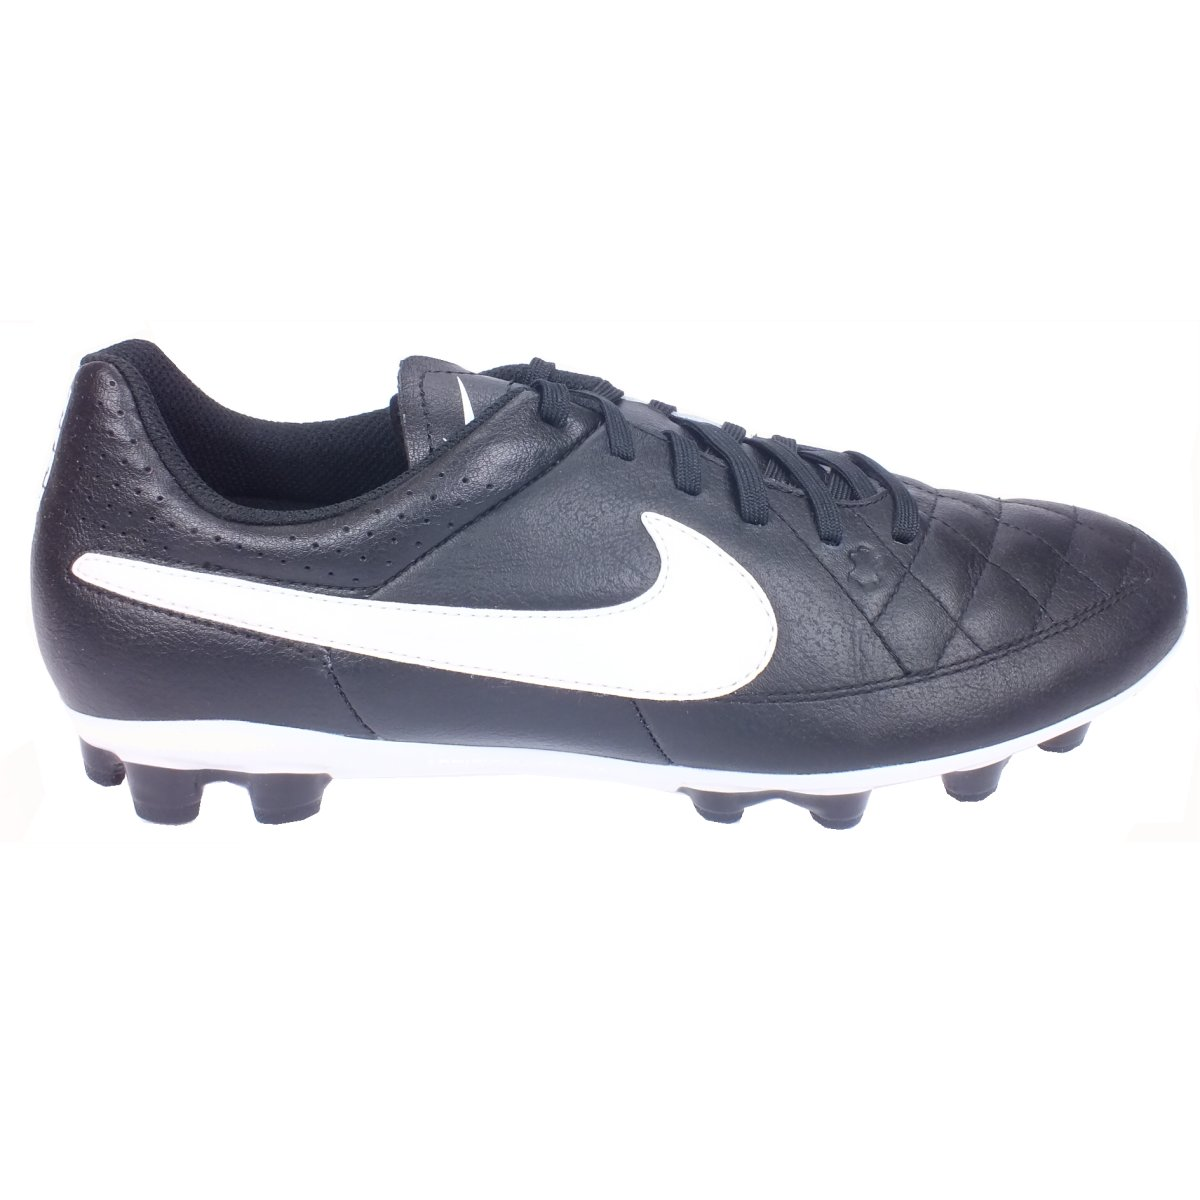 nike tiempo genio leather ag herren schuhe fu ballschuhe. Black Bedroom Furniture Sets. Home Design Ideas